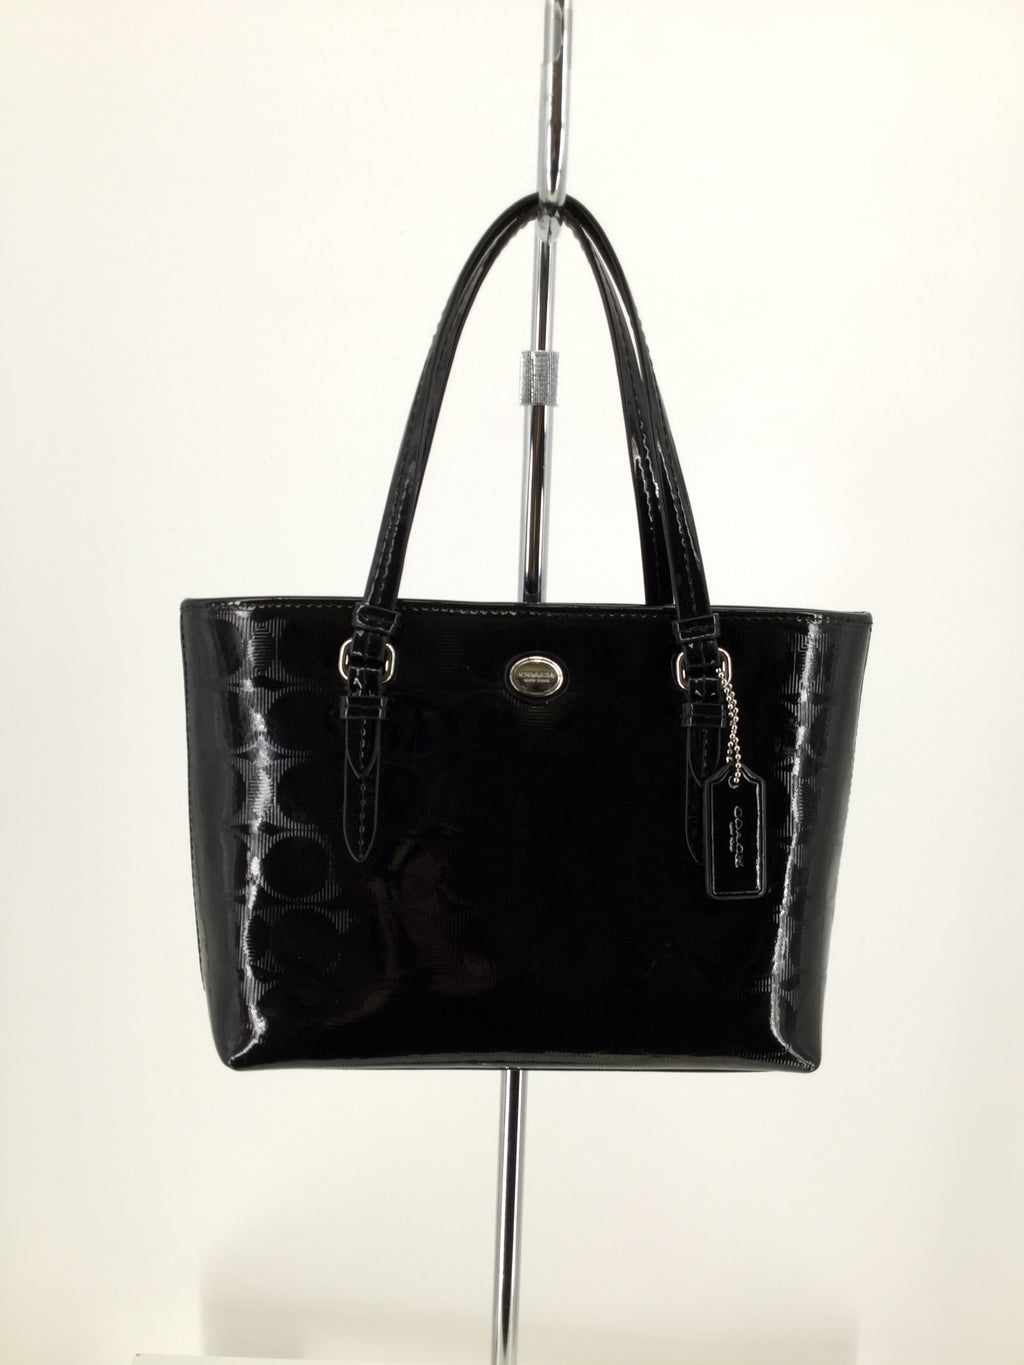 Small Black Patent Leather Coach Handbag